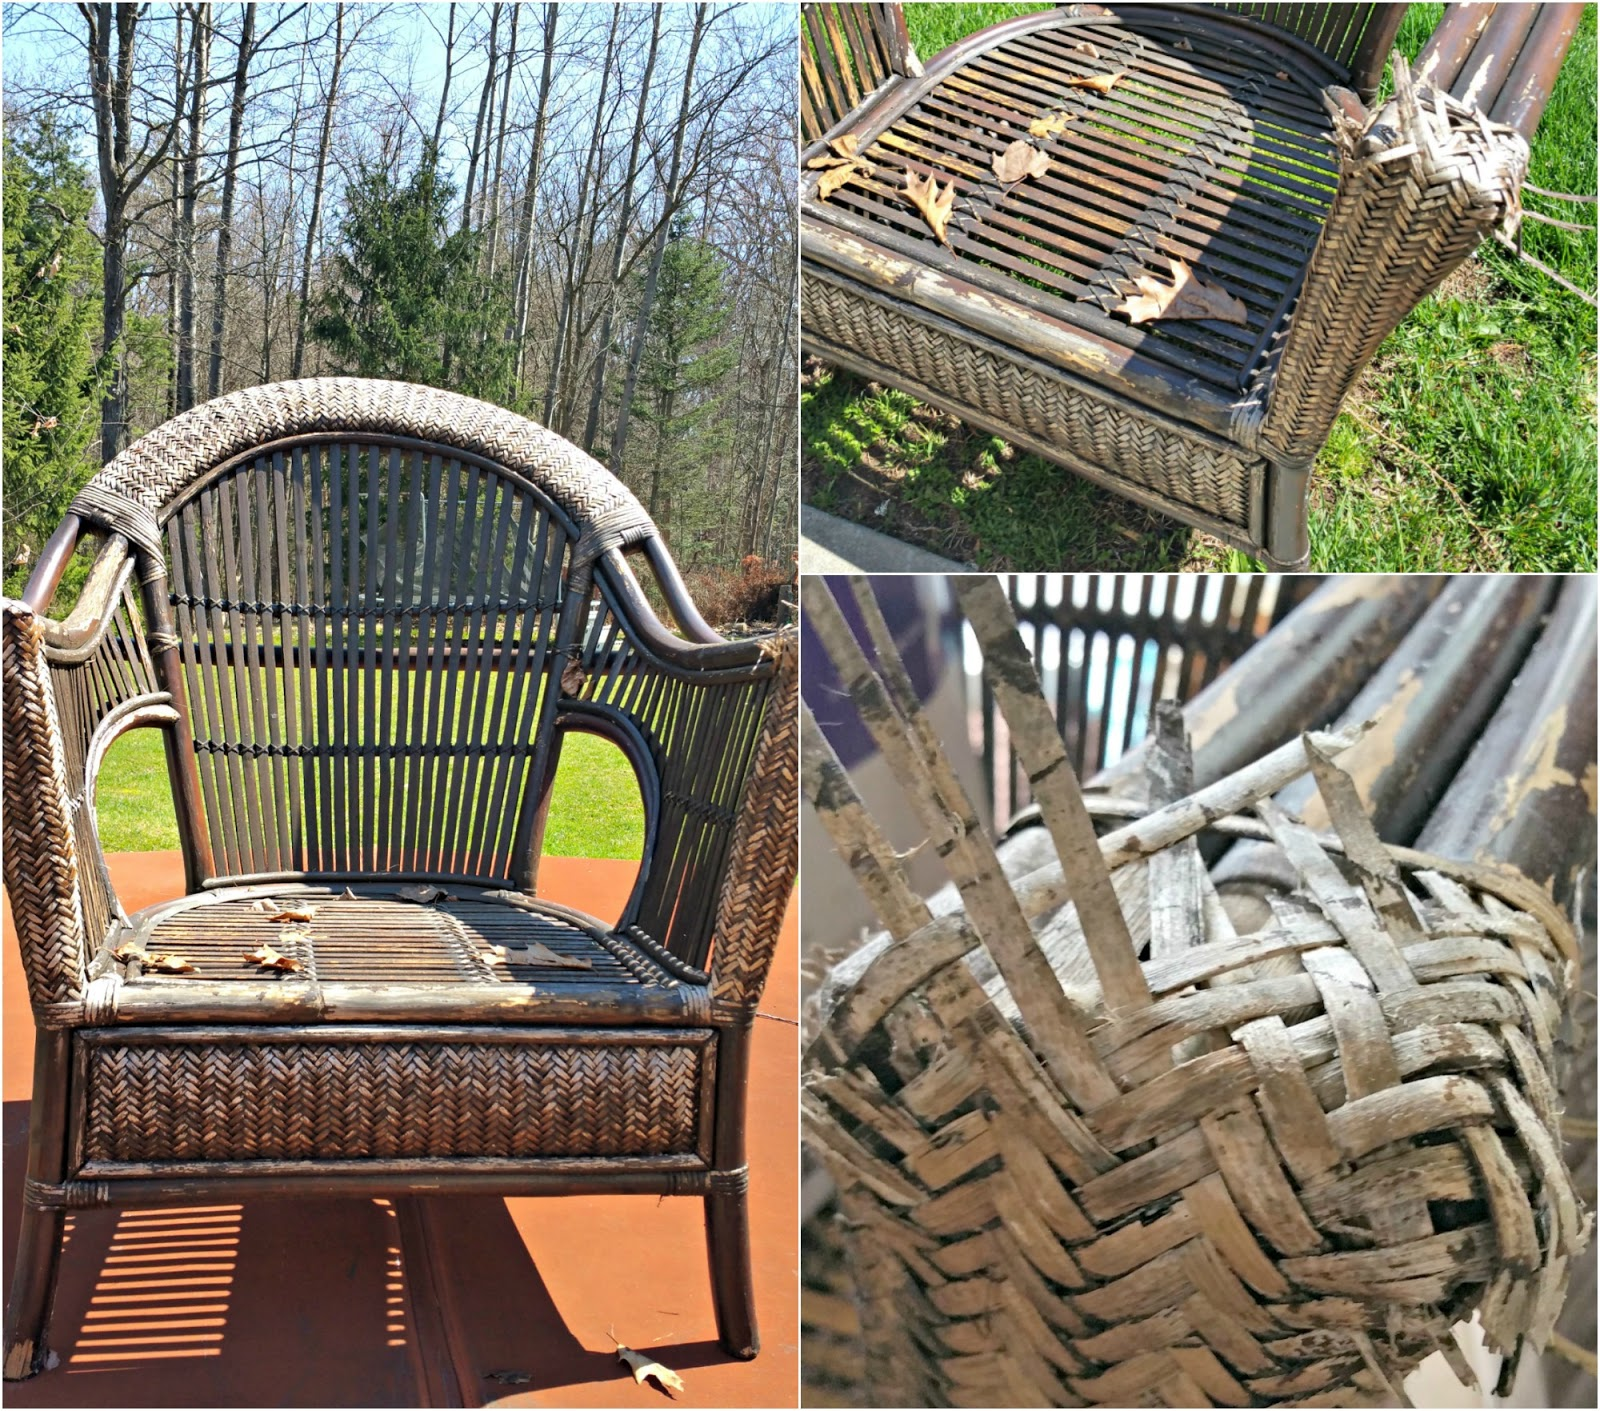 Then Hand Sanded The Wicker And Rattan To Smooth Off Any Rough Areas.  Leaving Some Remnants Of The Original ...